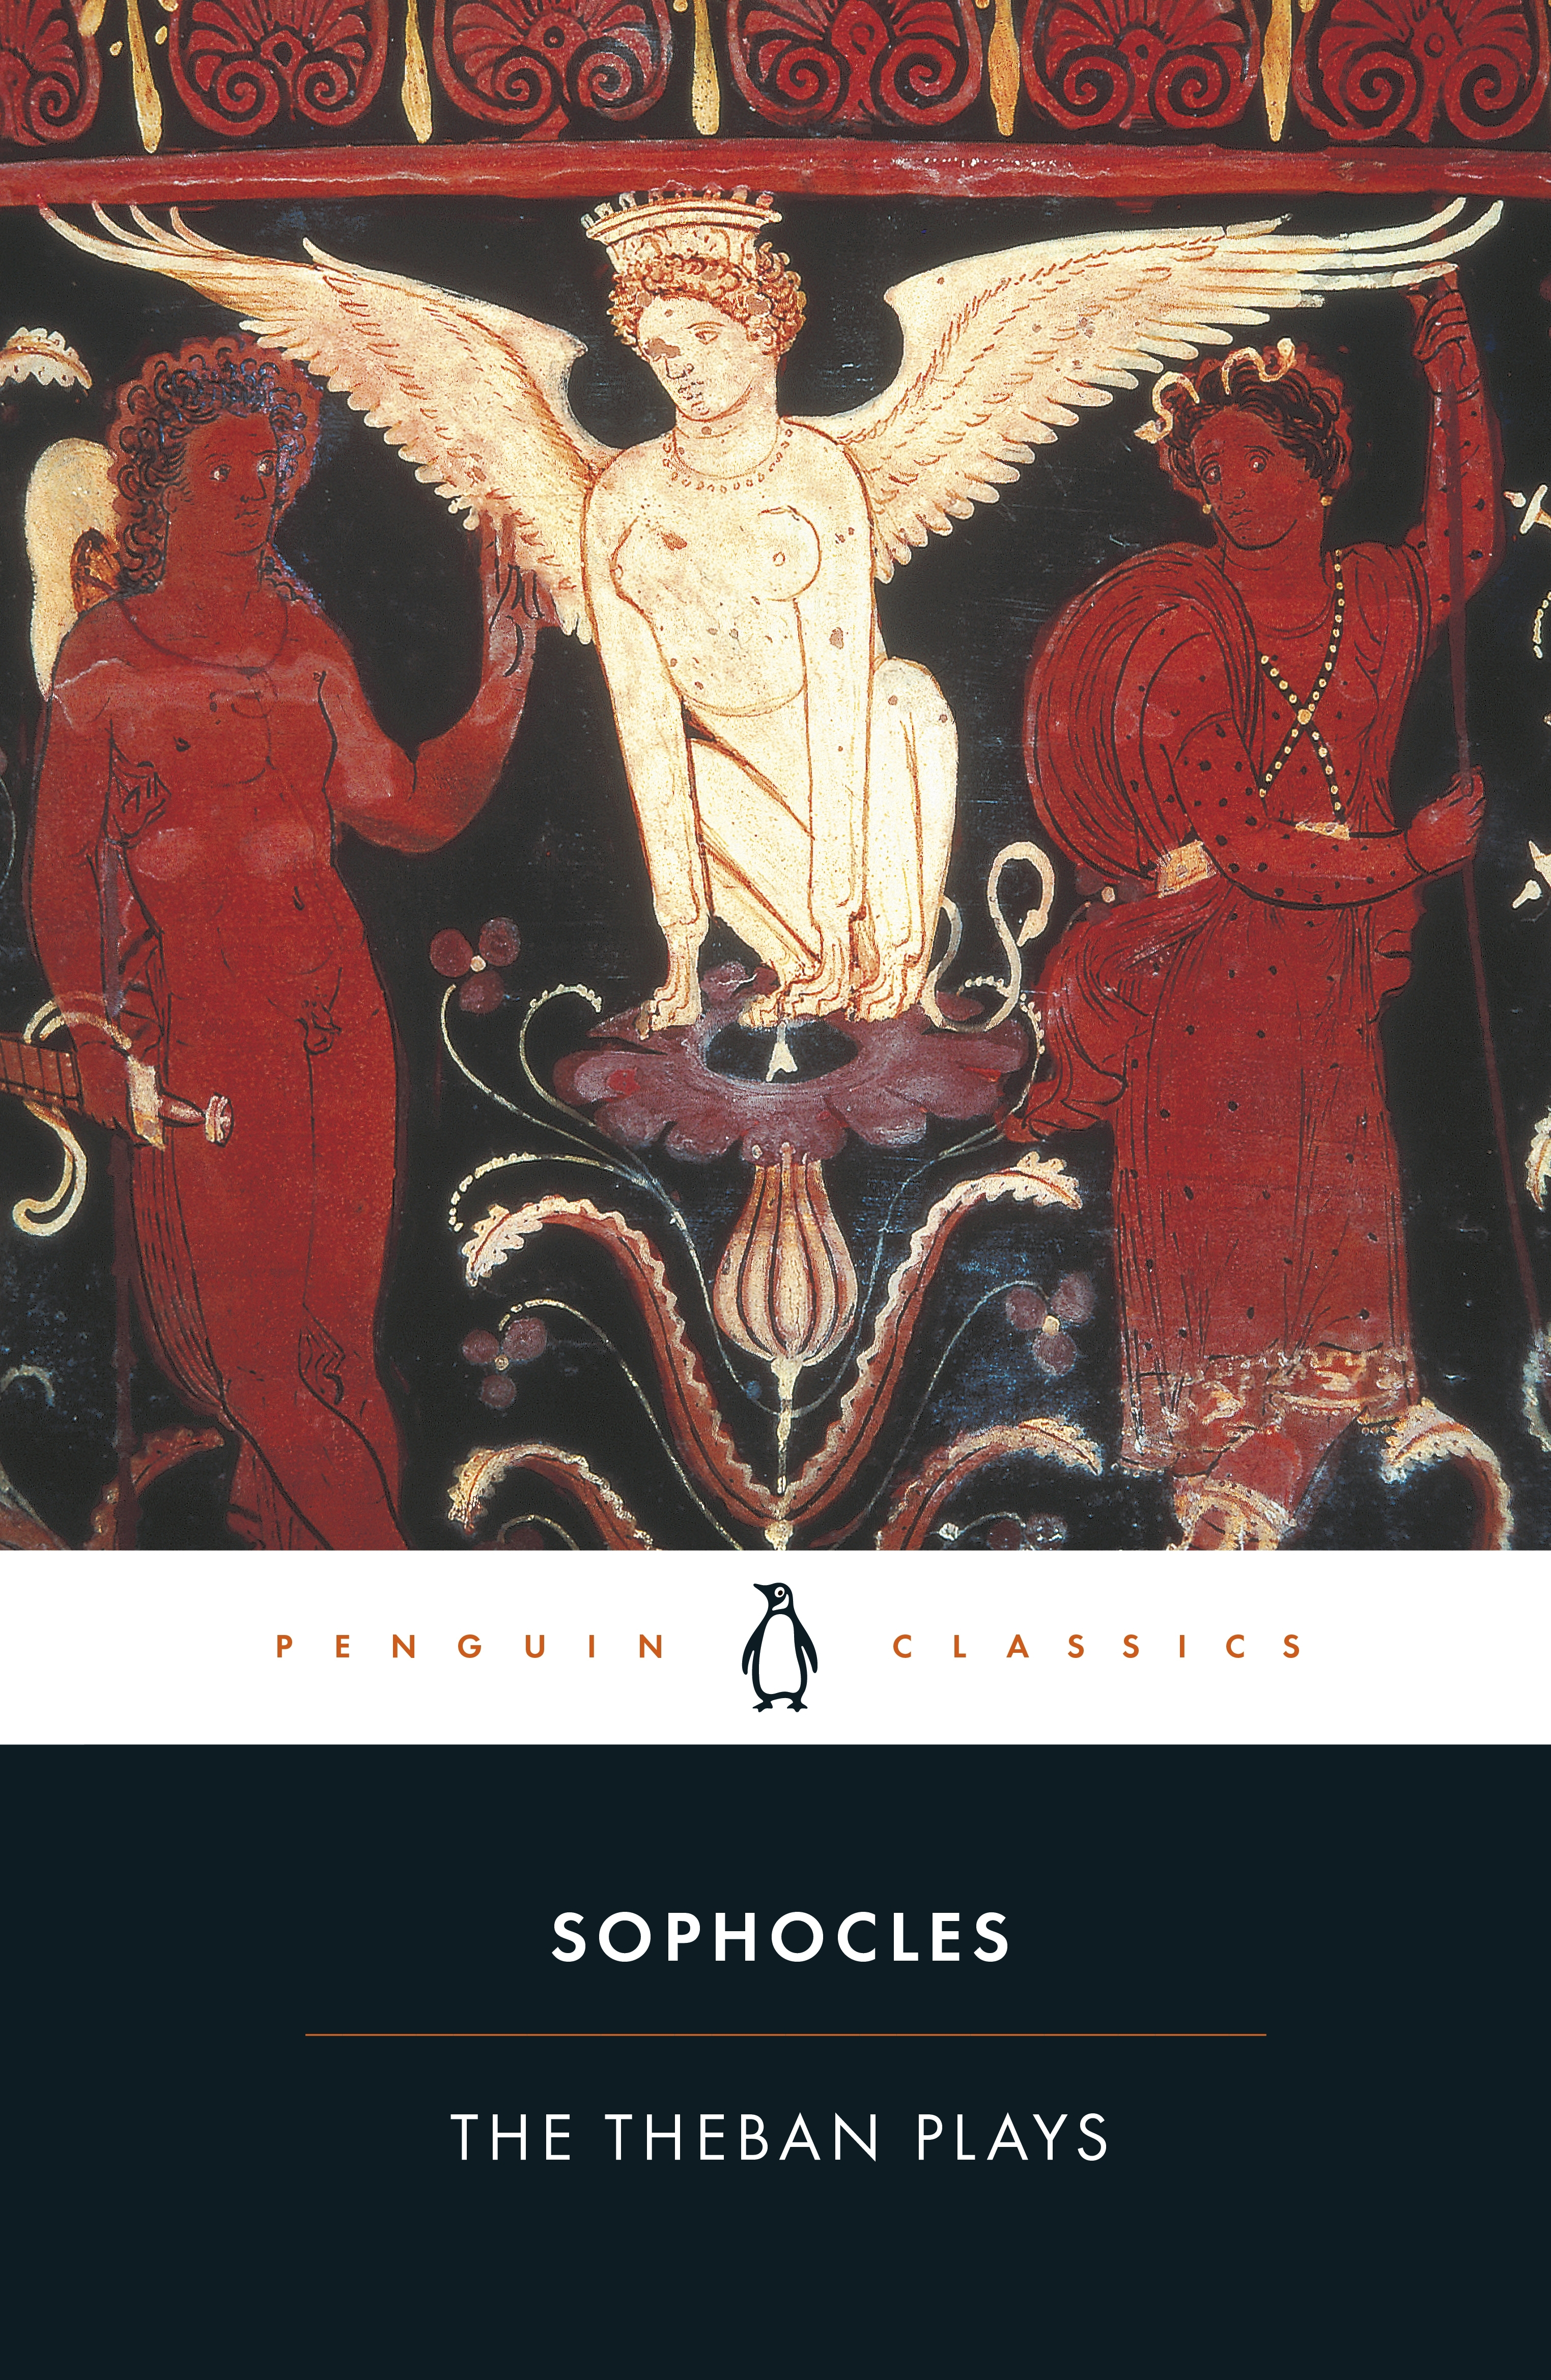 an examination of the novel oedipus the king by sophocles Oedipus rex, otherwise known as oedipus the king, focuses on themes of fate, choice, free will, determination, power and memory the play focuses on the life of oedipus, king of thebes, and the.